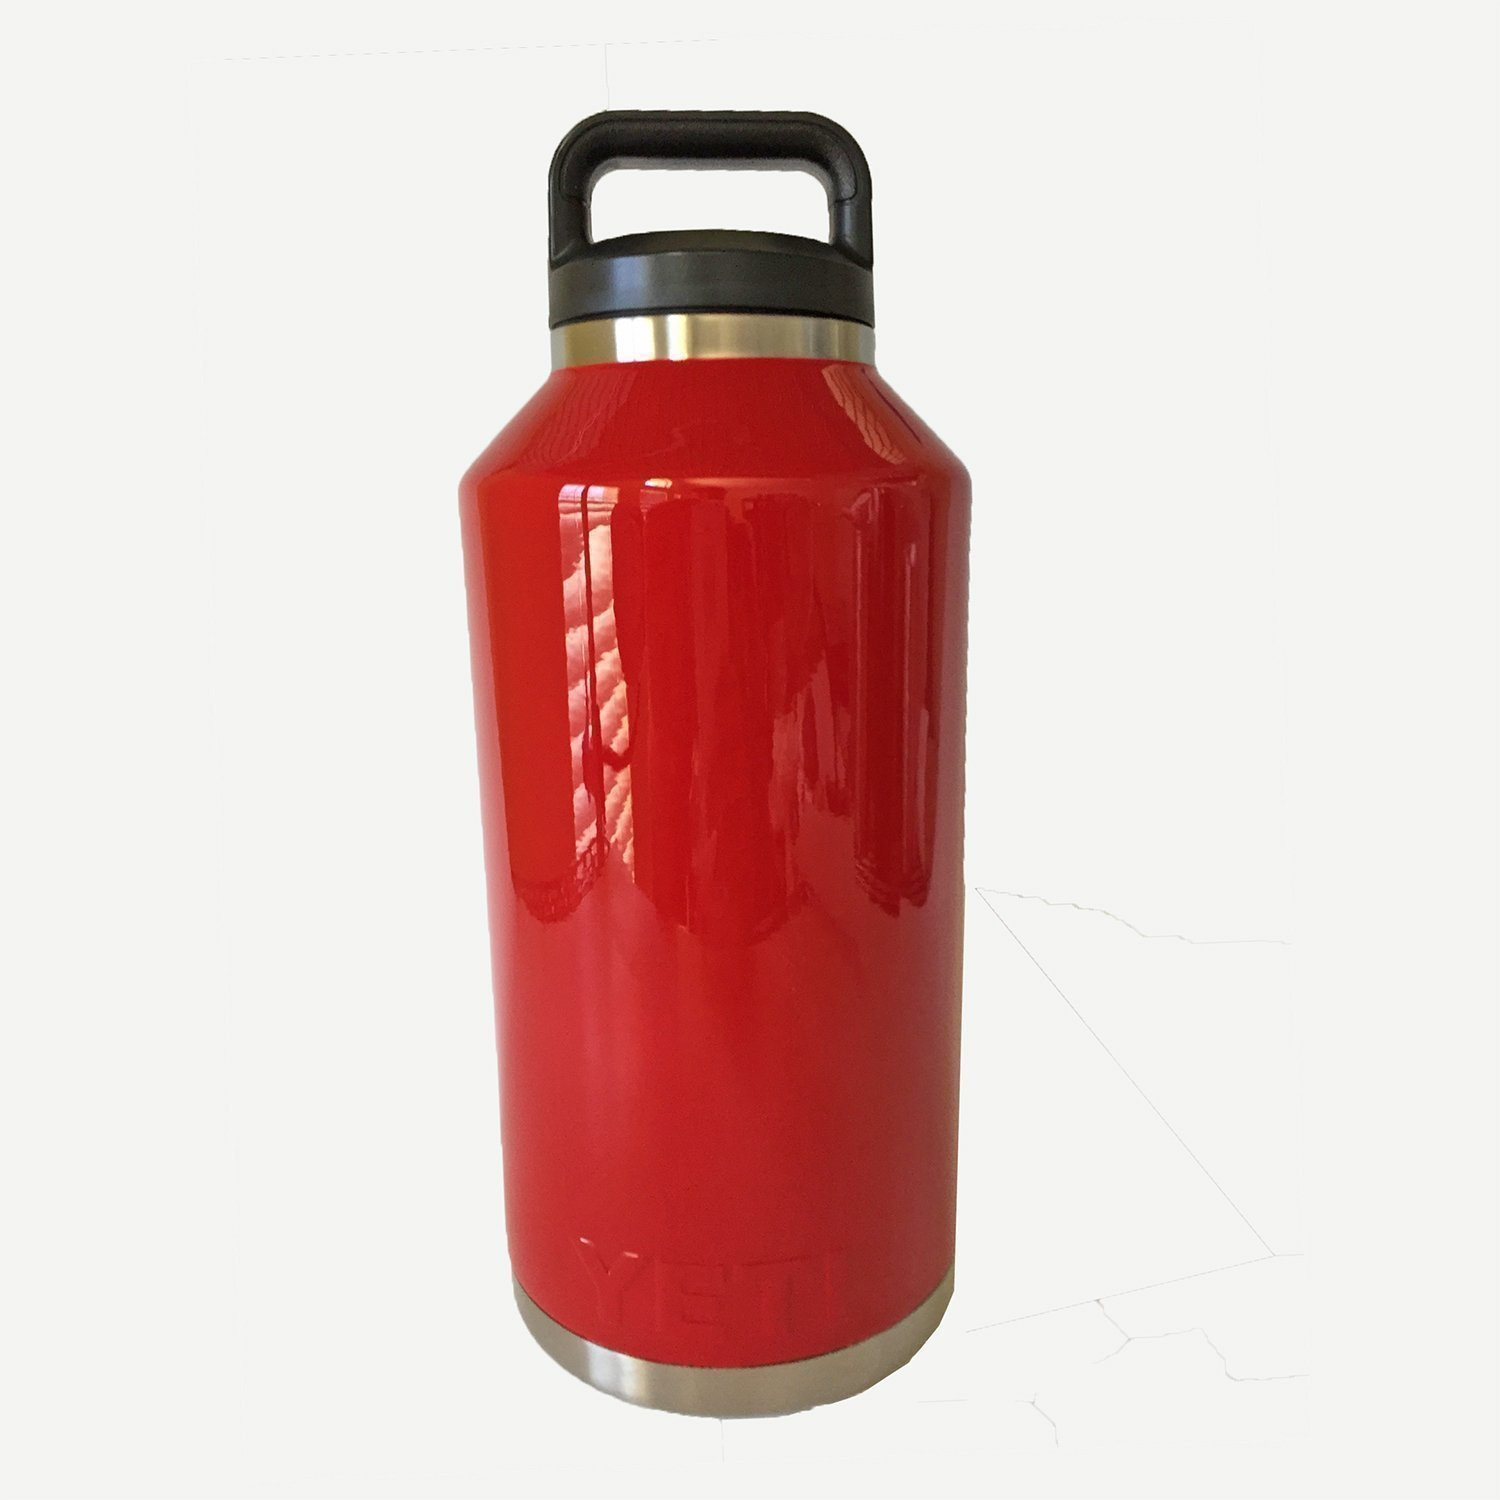 Water Bottle powder coated in Truly Red with optional engraving available